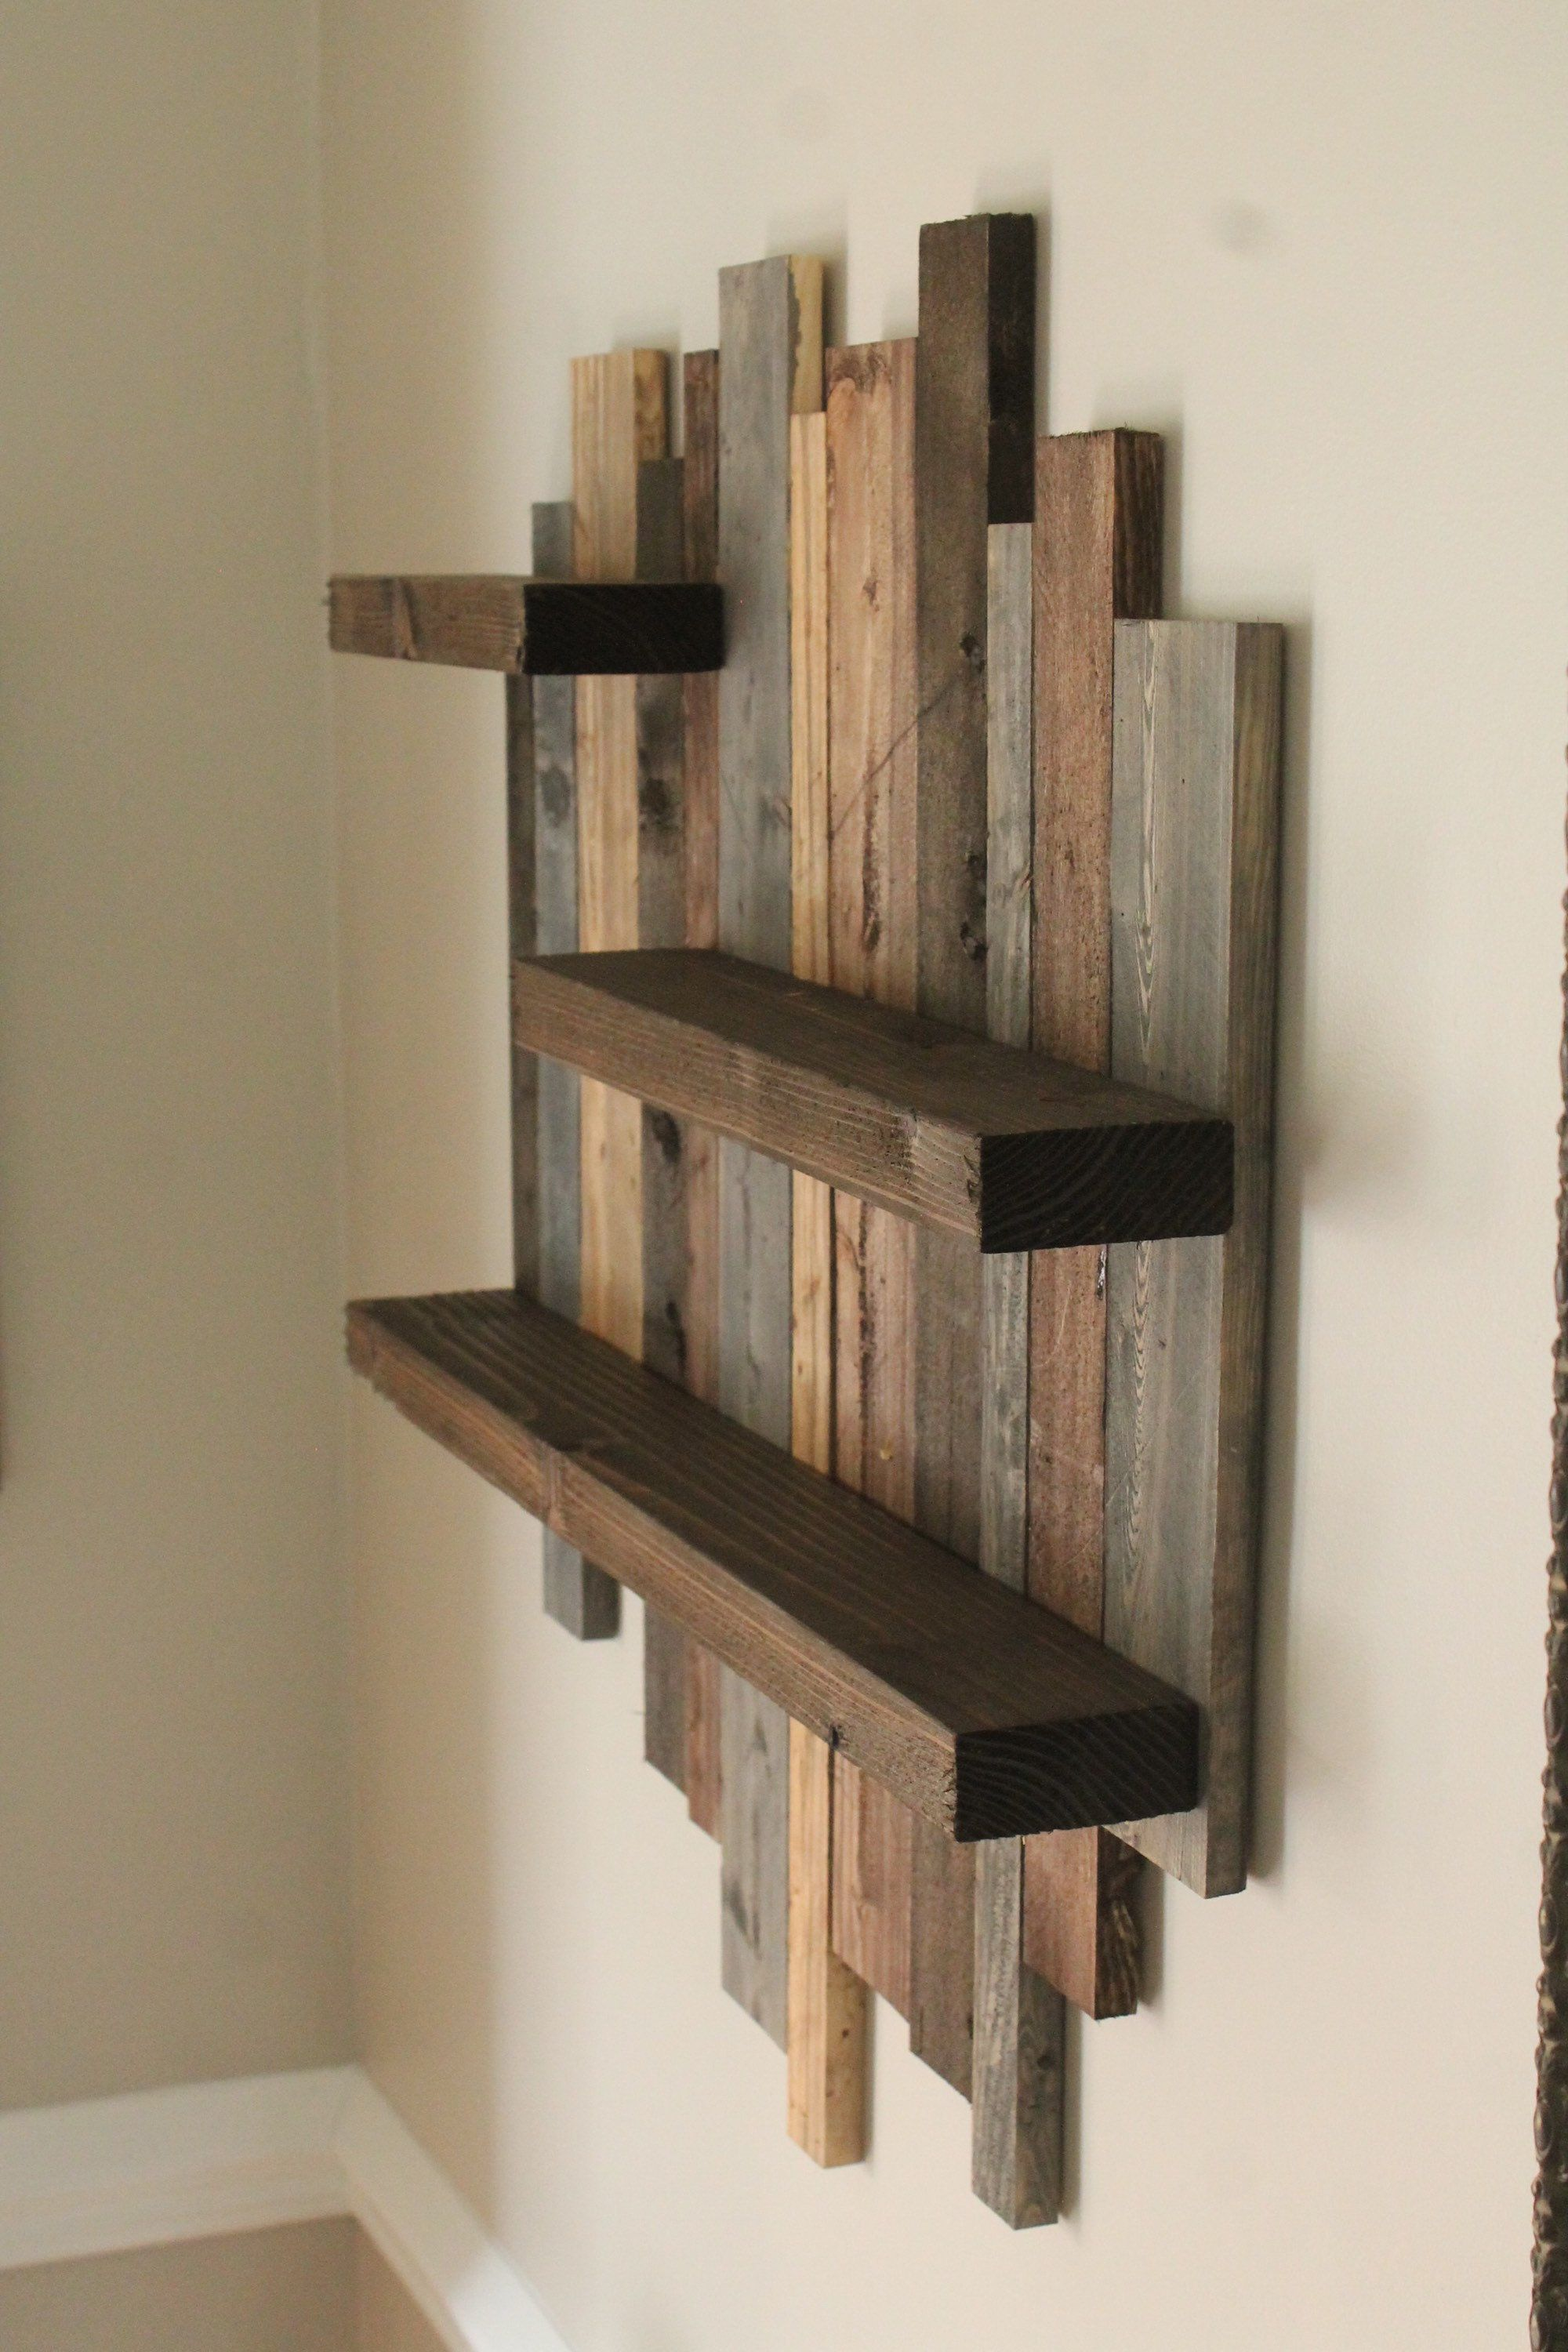 Unique Rustic Wall Shelf Handmade Farmhouse Style Wall Shelf Vintage Housewarming Gift Wall Shelf Farm Style Wall Shelf Stained Shelf Rustic Wood Shelving Rustic Wall Shelves Rustic Furniture Diy